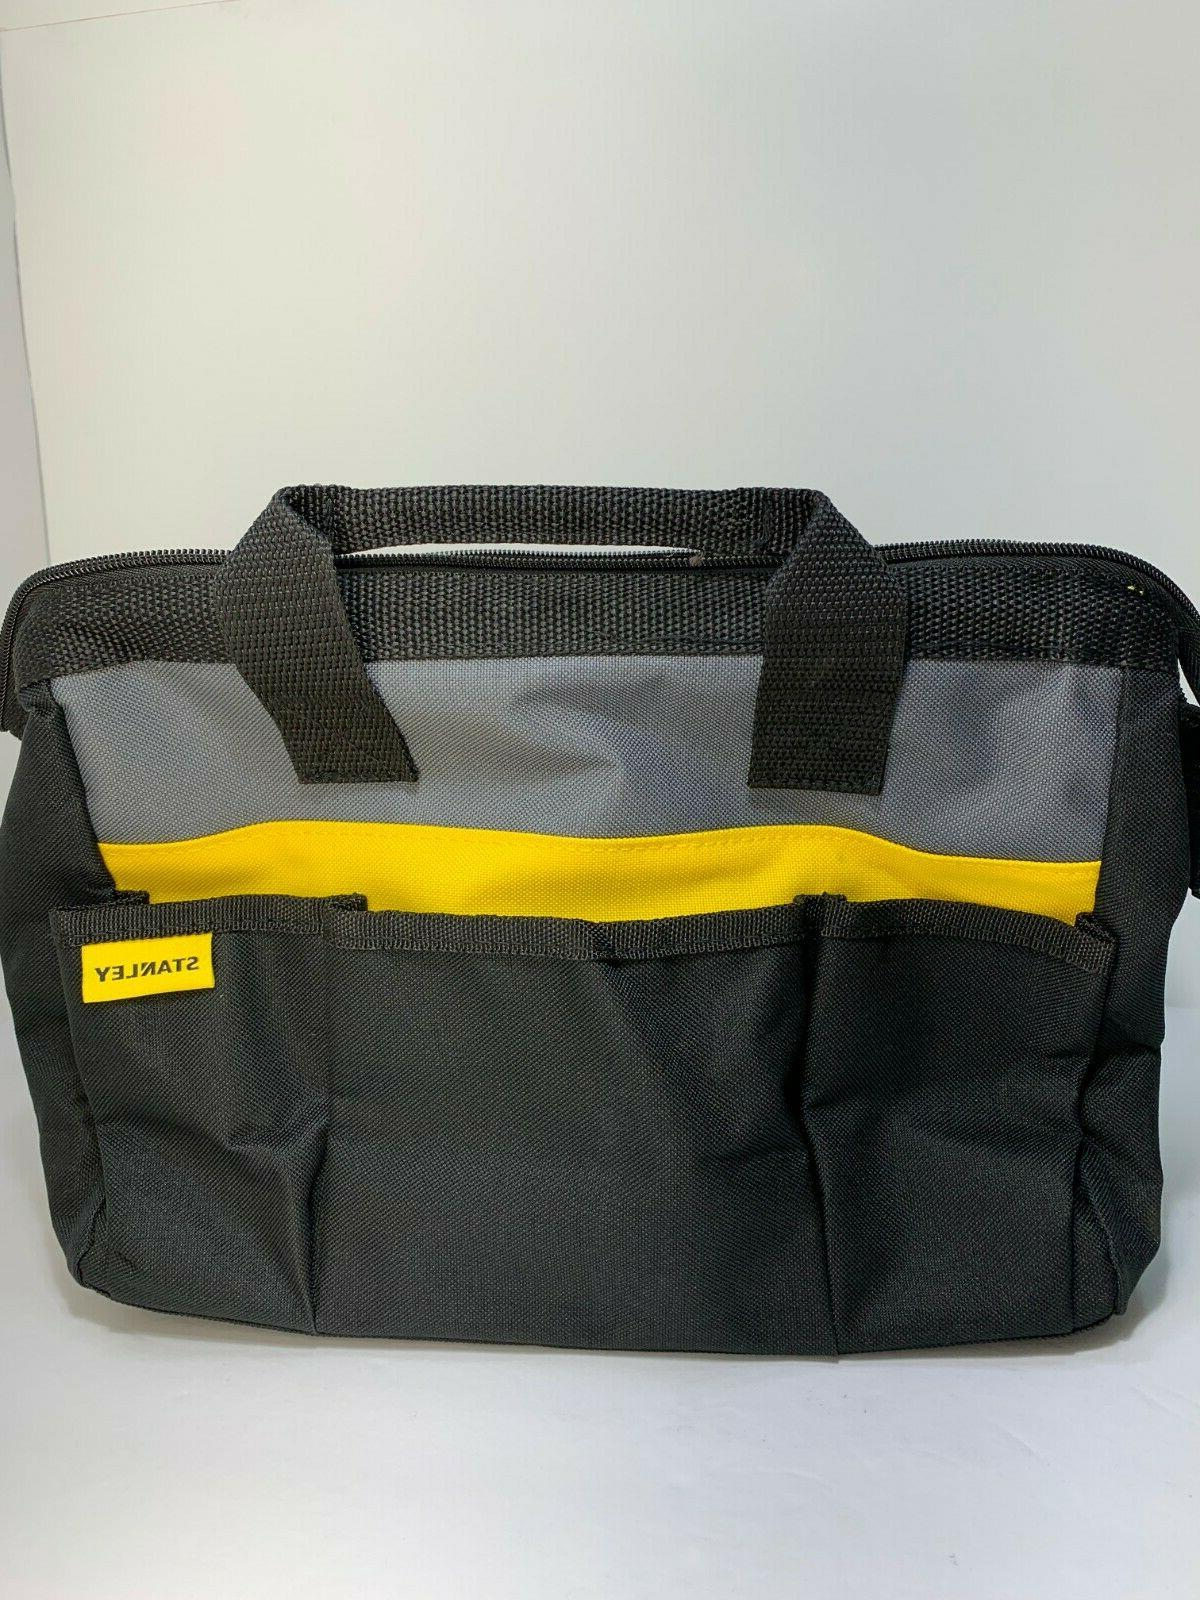 STANLEY TOOL Soft Sided -New